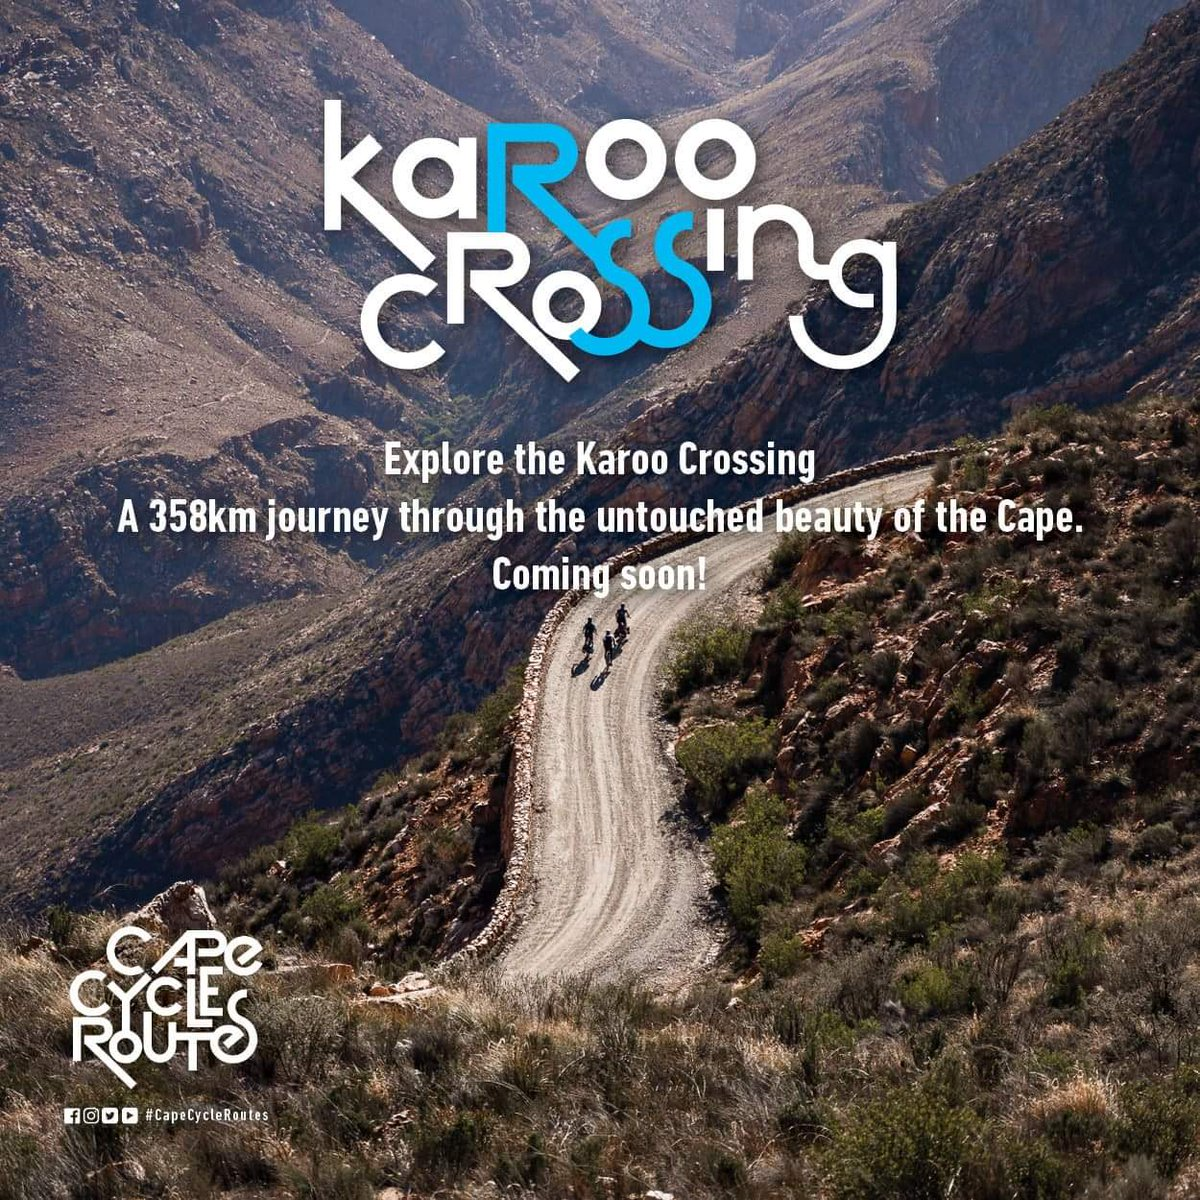 Today we celebrate The #KarooCrossing route in Prince Albert which is the new addition to the Cape Cycle Routes Network...  This 358km journey will take you through some of the most historic and beautiful parts of the Cape.   #CapeCycleRoutes #WeAreOpen #SAisTravelReady https://t.co/6bzt7CUC6z